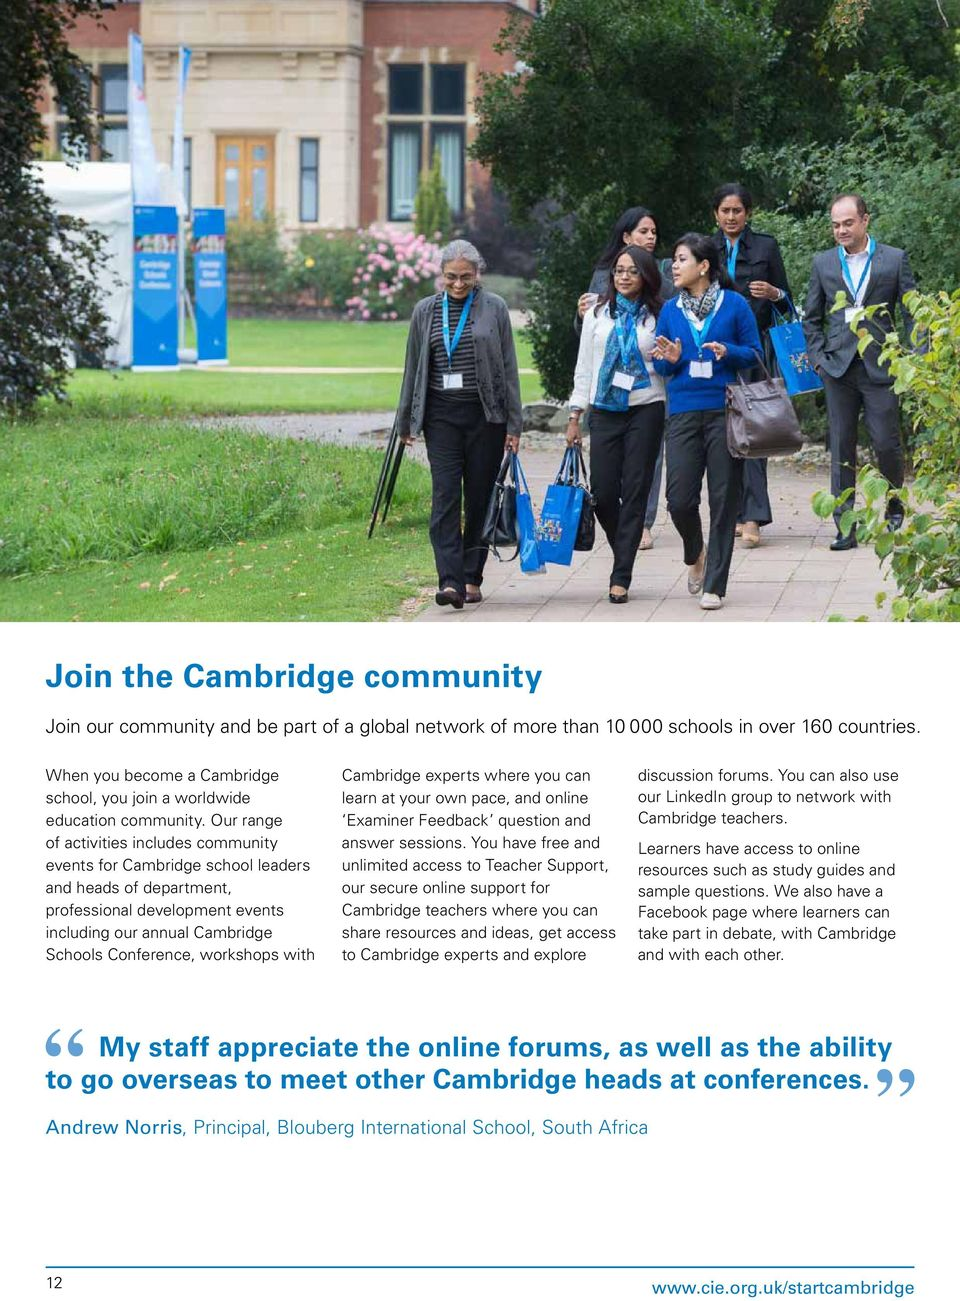 Our range of activities includes community events for Cambridge school leaders and heads of department, professional development events including our annual Cambridge Schools Conference, workshops